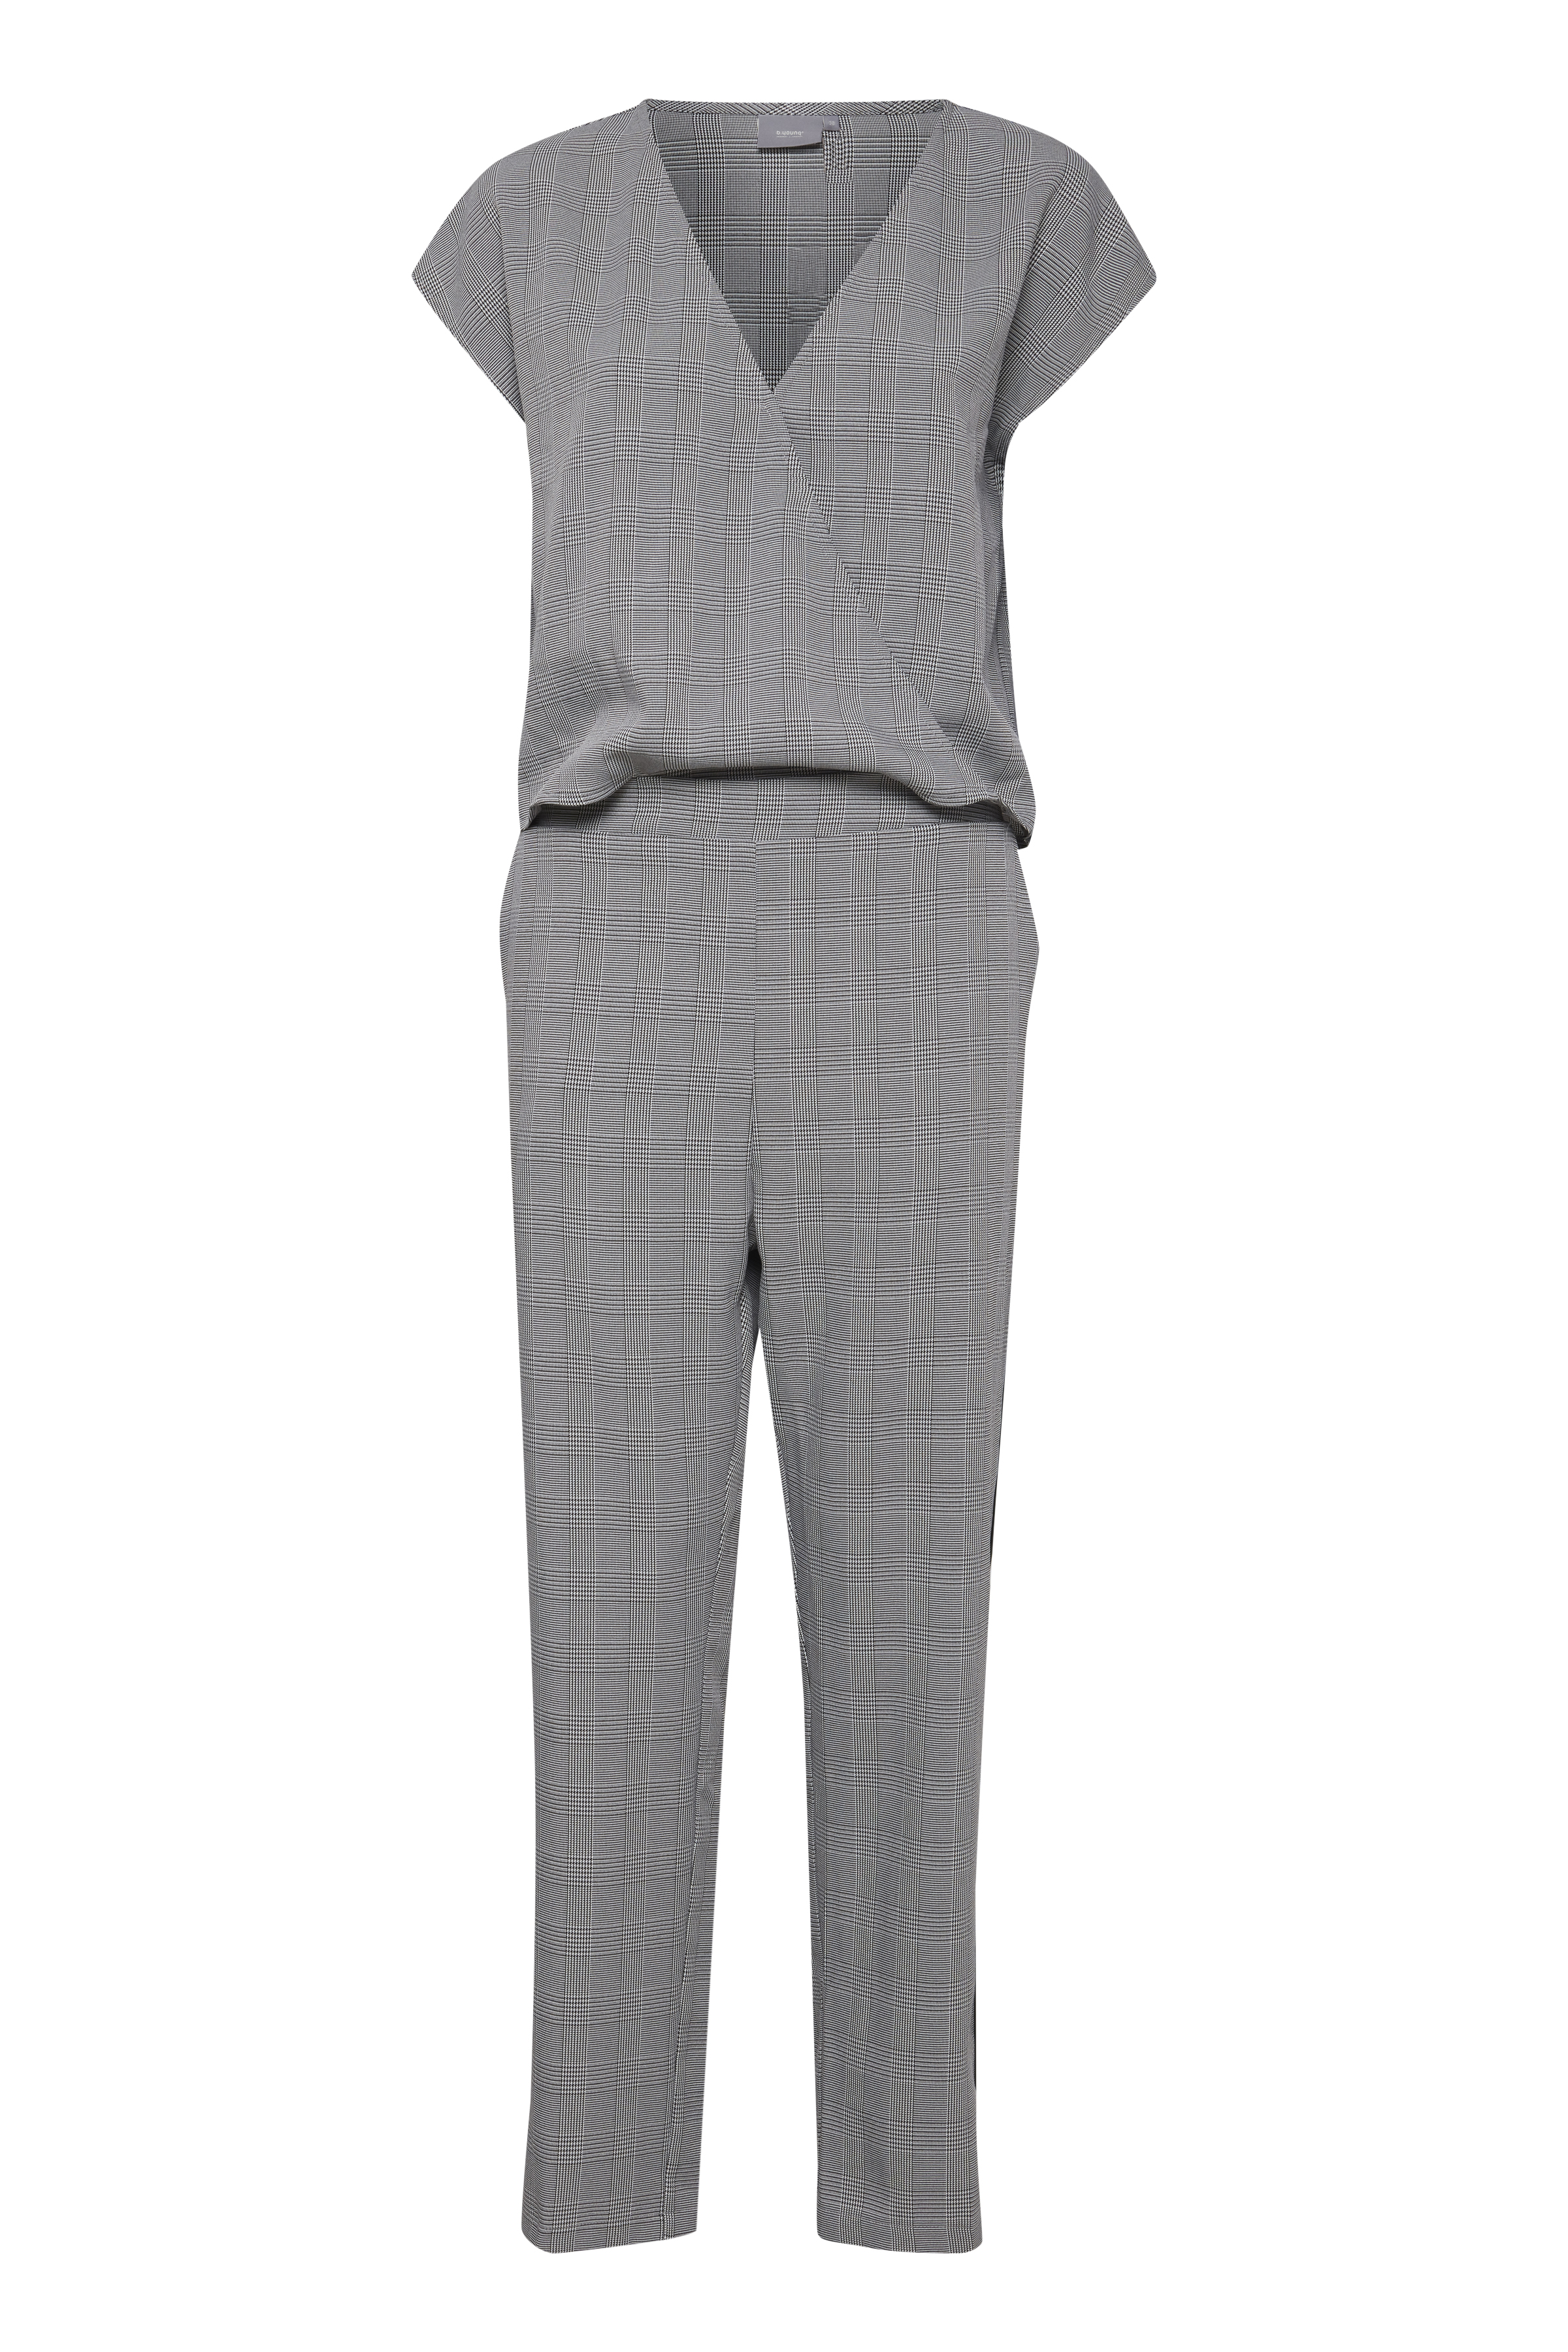 Check combi 1 Jumpsuit from b.young – Buy Check combi 1 Jumpsuit from size 36-44 here